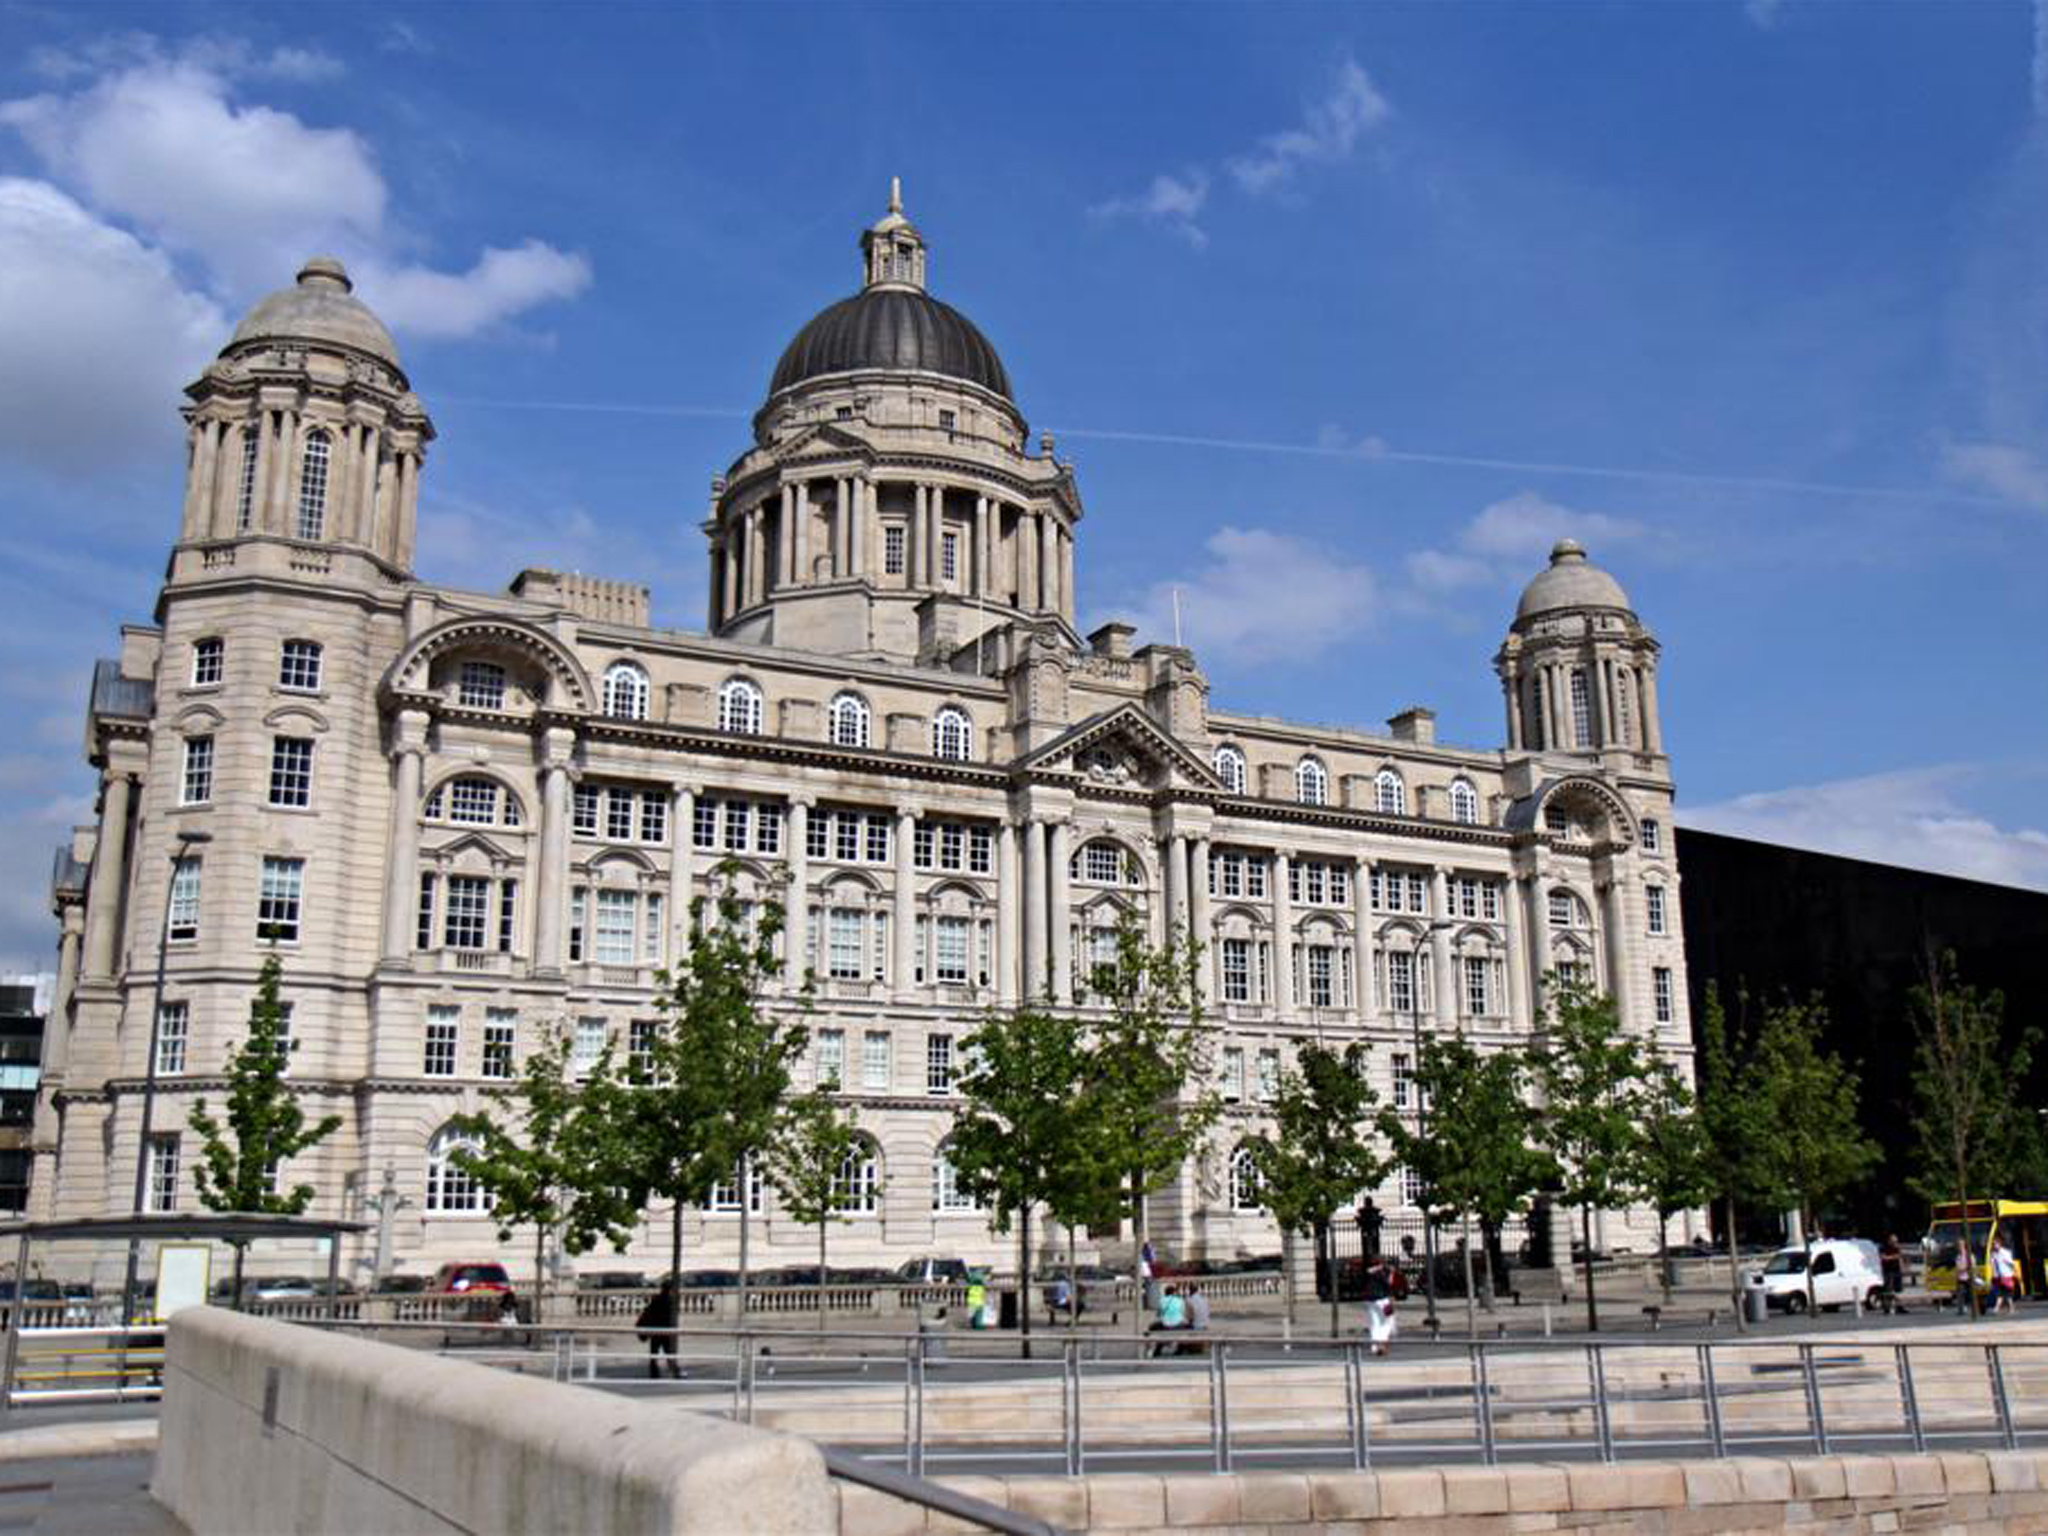 The Port of Liverpool building at Pier Head